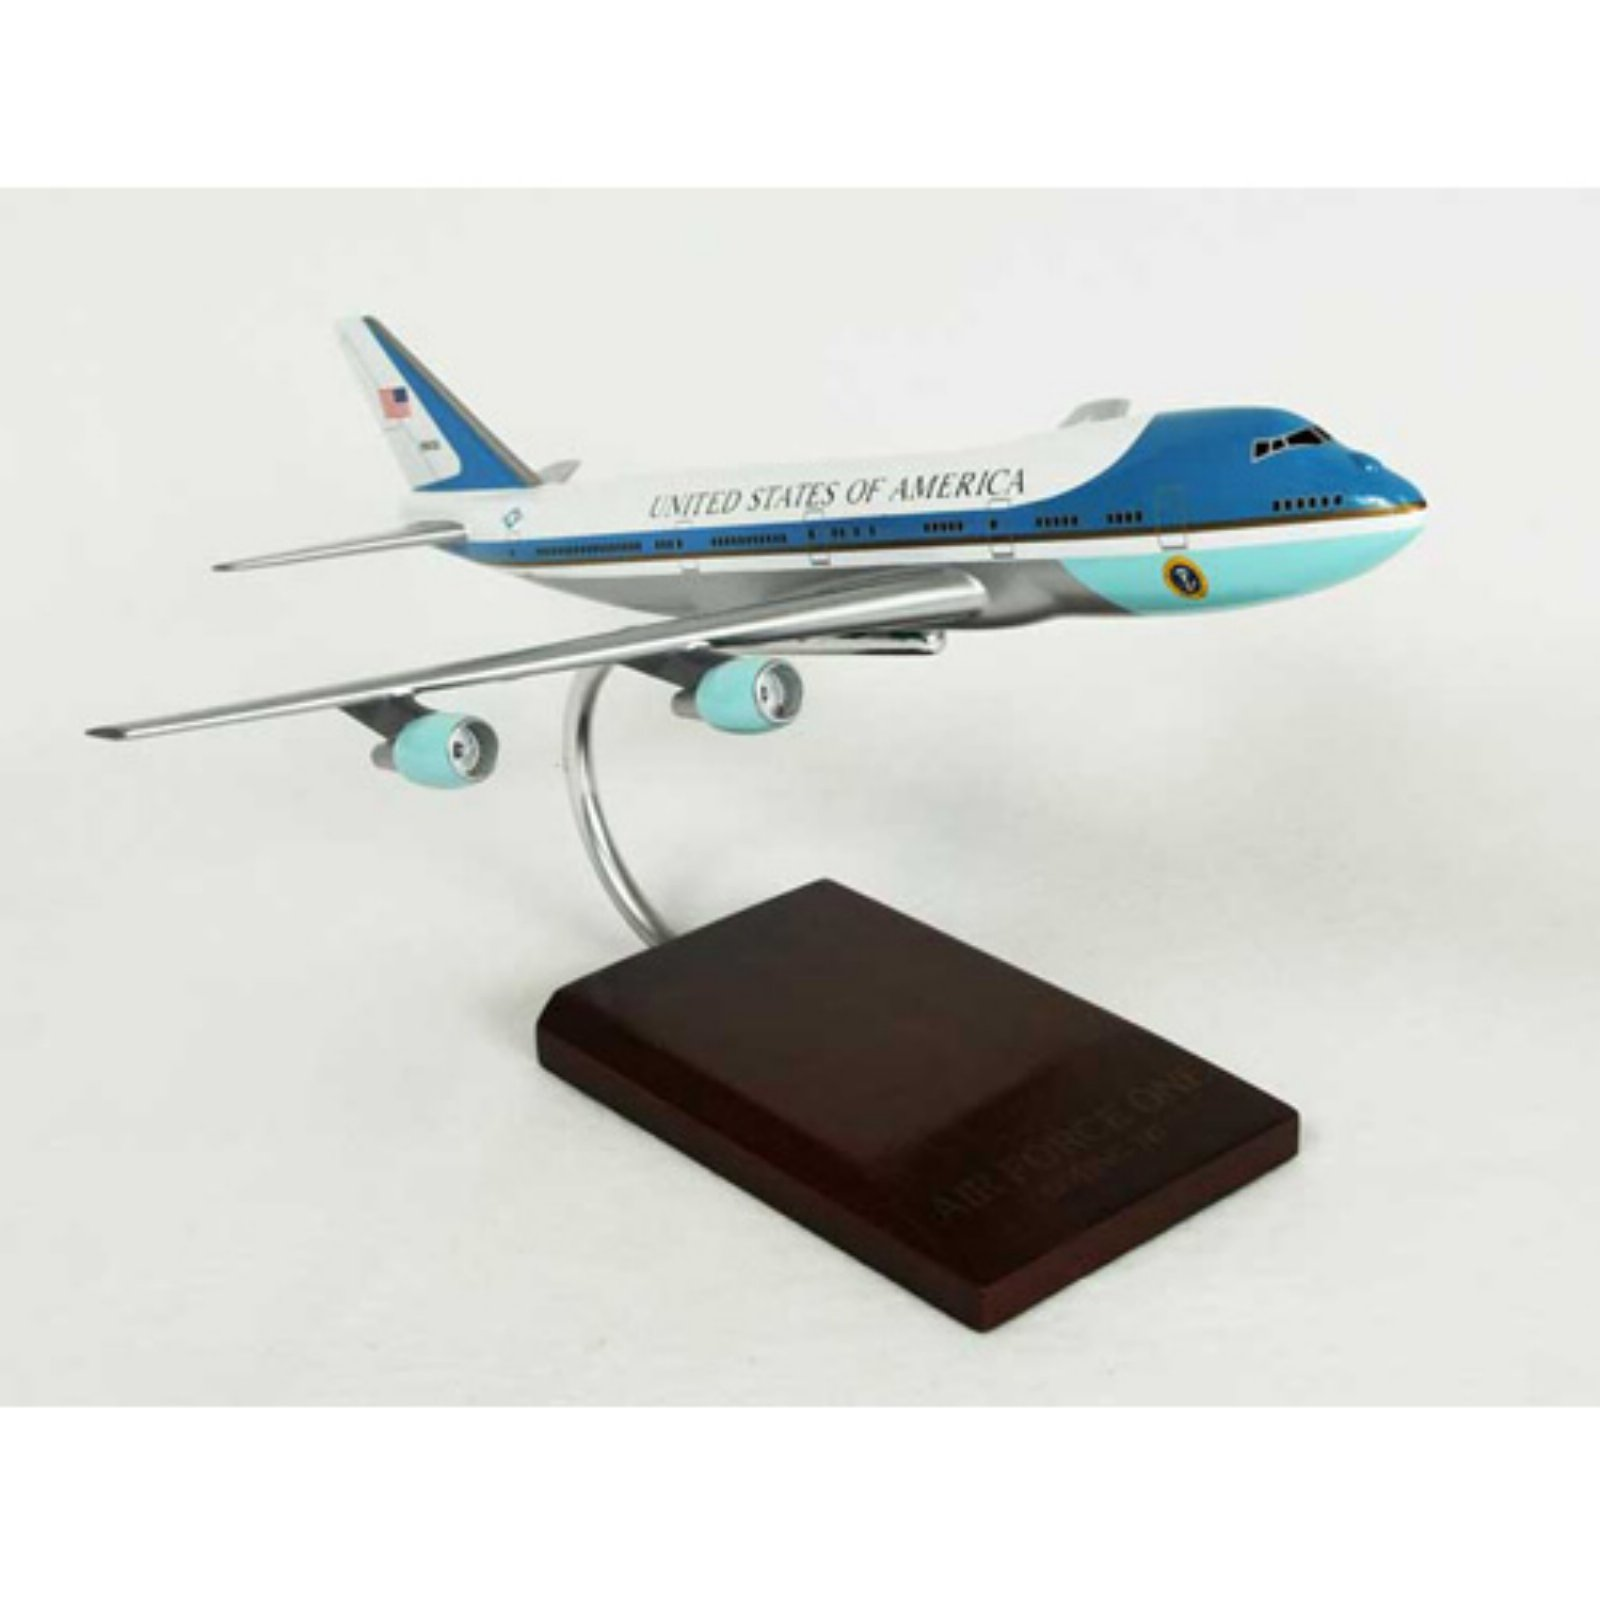 Daron Worldwide VC-25A Air Force One Model Airplane